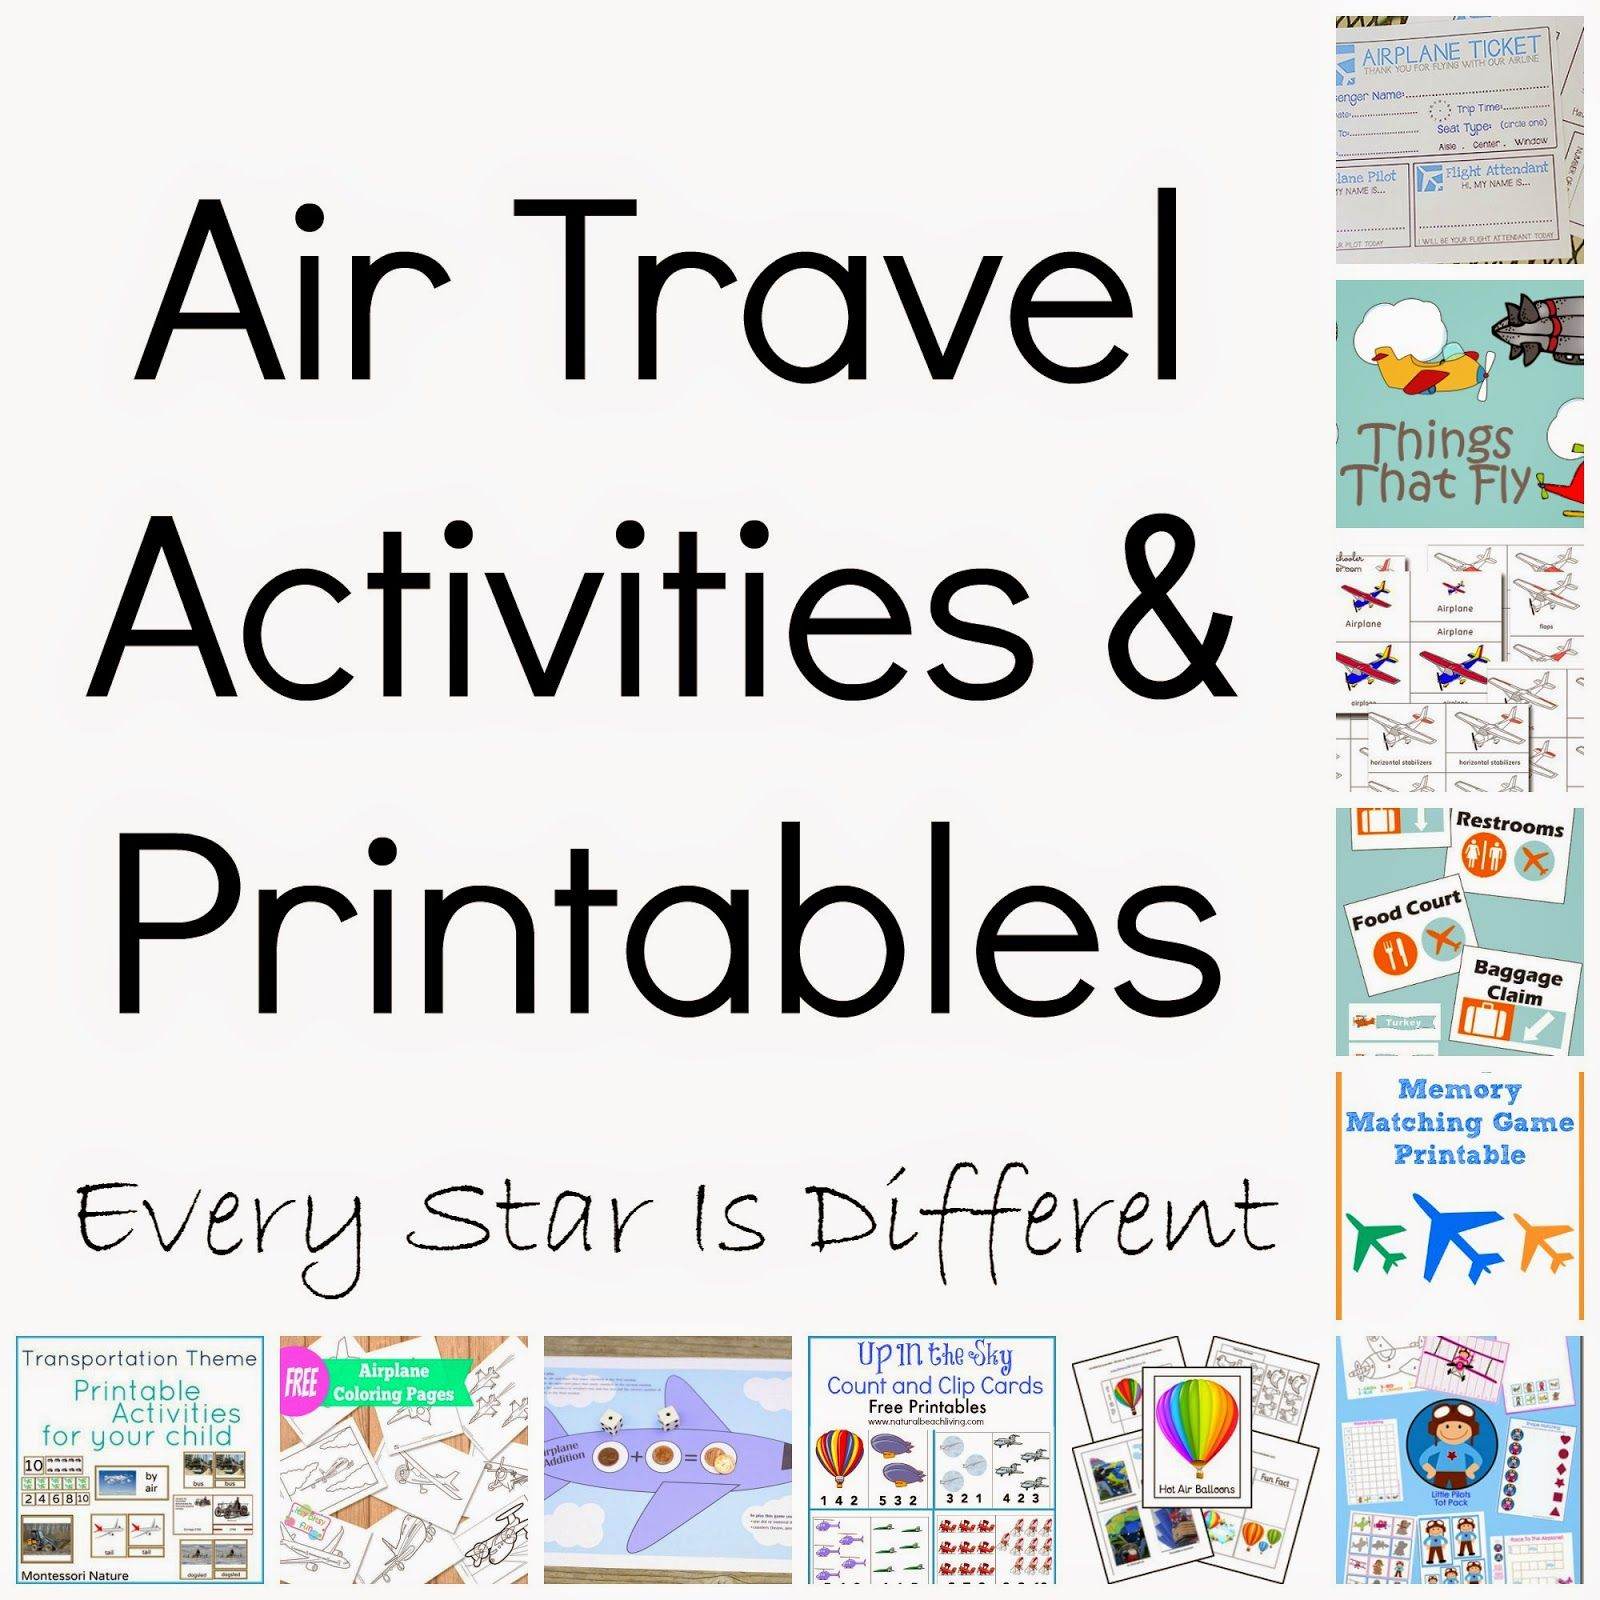 every star is different air travel activities u0026 printables klp